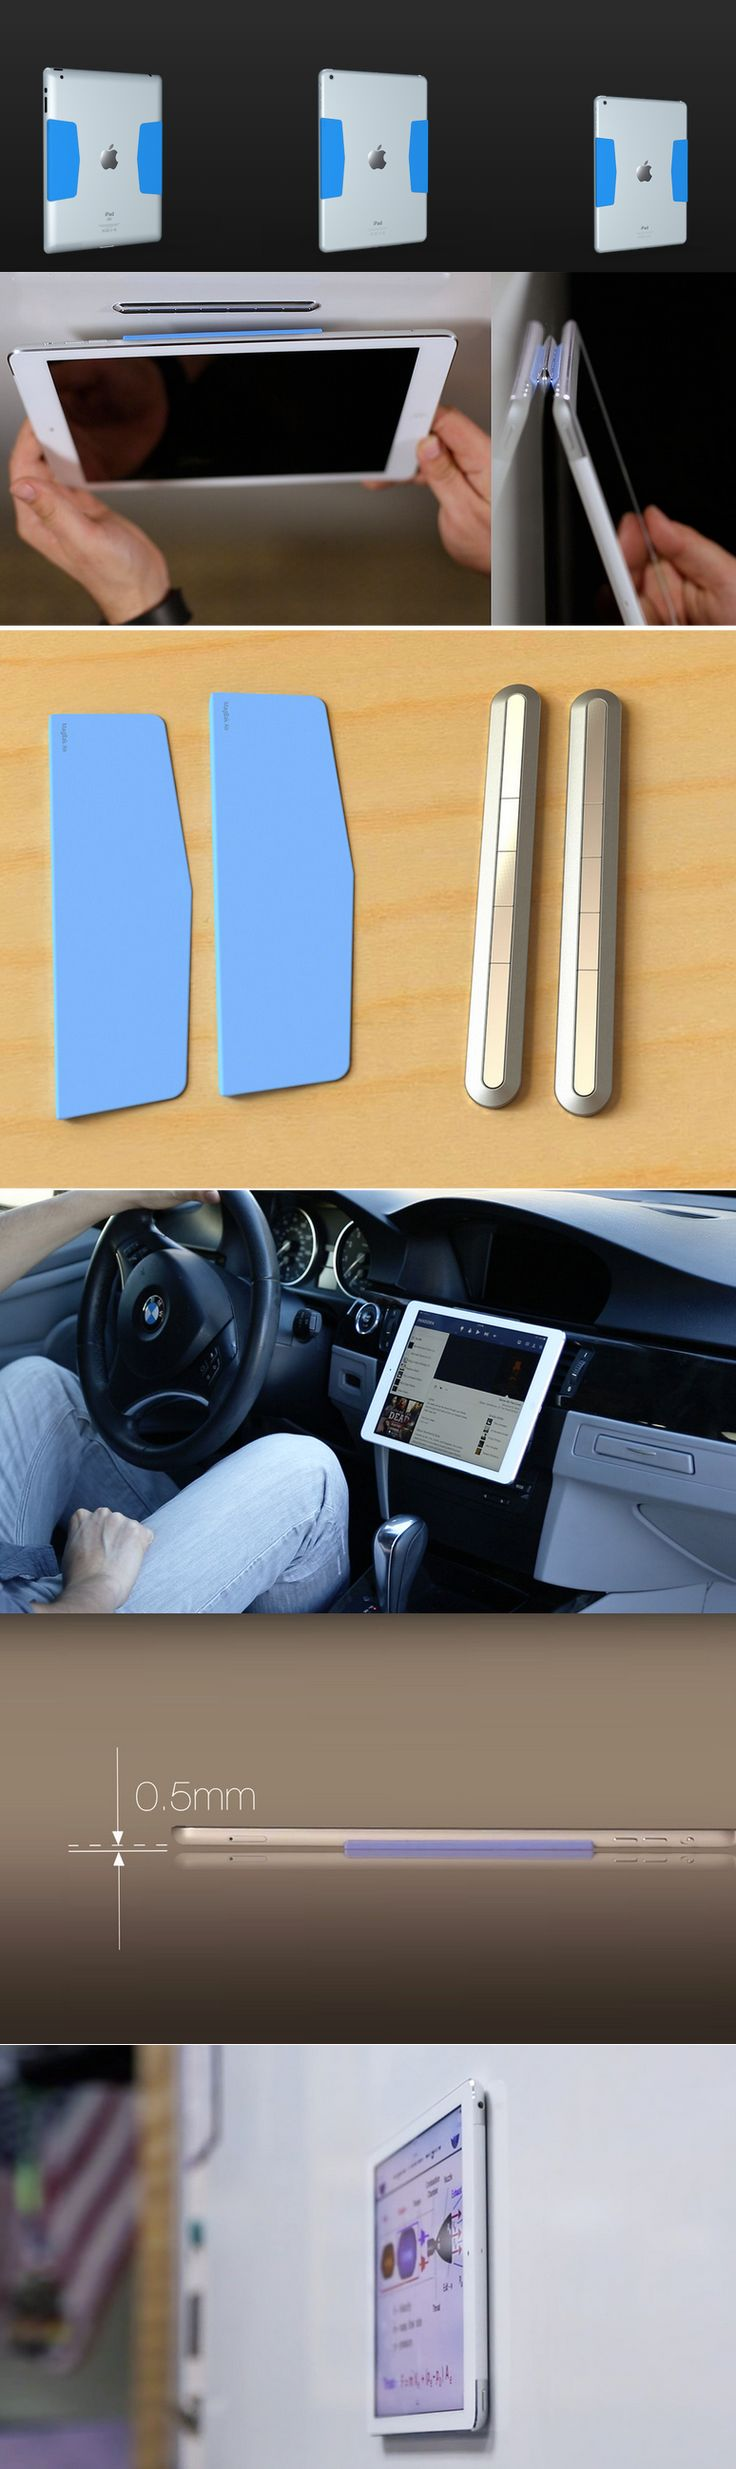 World's thinnest iPad mount for your car, kitchen & anywhere else. Provides the perfect grip. Protects your iPad. Snaps the SmartCover to the back.